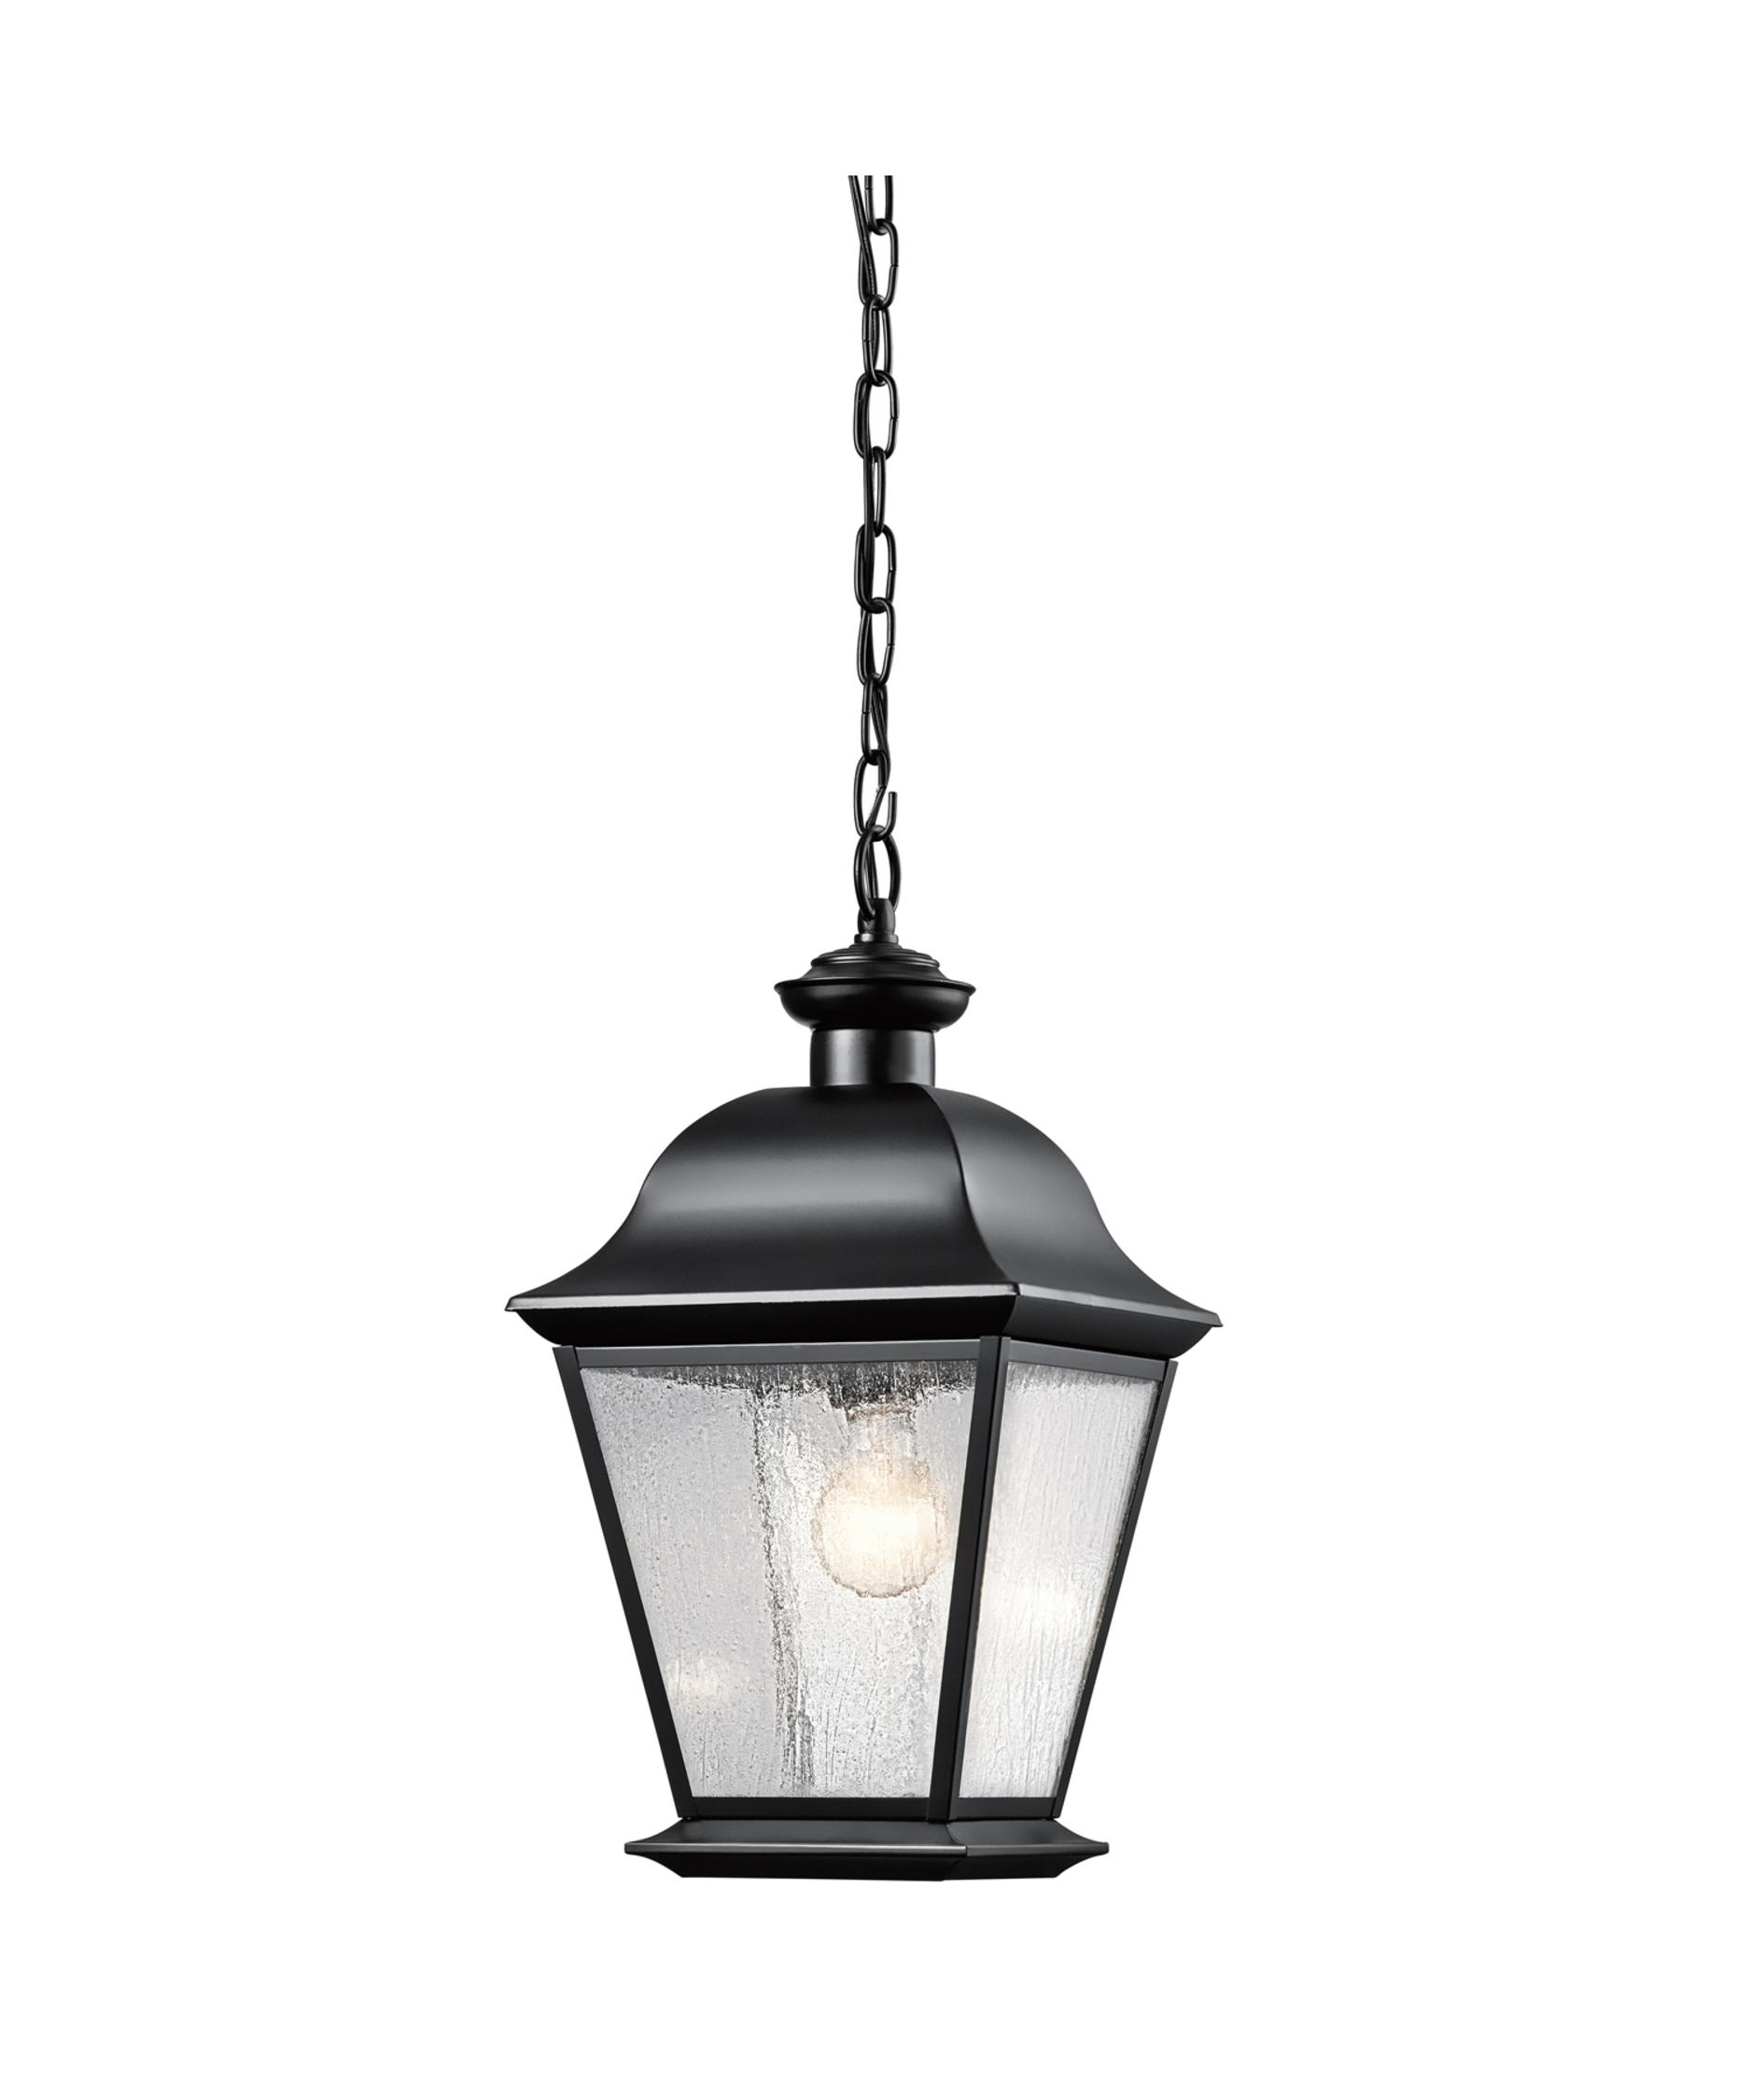 Best And Newest Kichler 9809 Mount Vernon 10 Inch Wide 1 Light Outdoor Hanging Intended For Outdoor Hanging Light In Black (View 2 of 20)